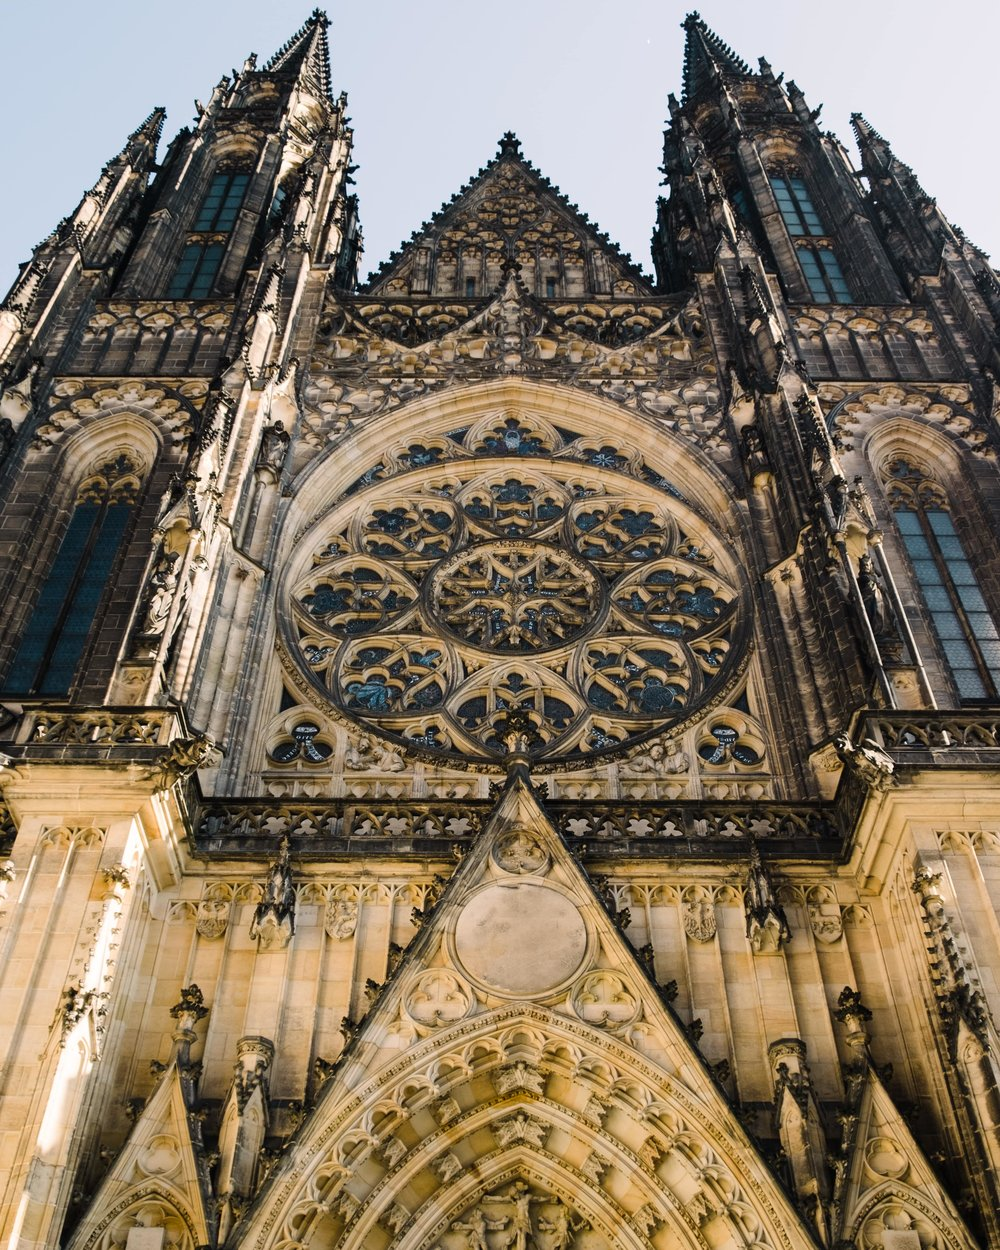 PragueCastle_Prague_JuliaMattis_Photo13-min.jpg